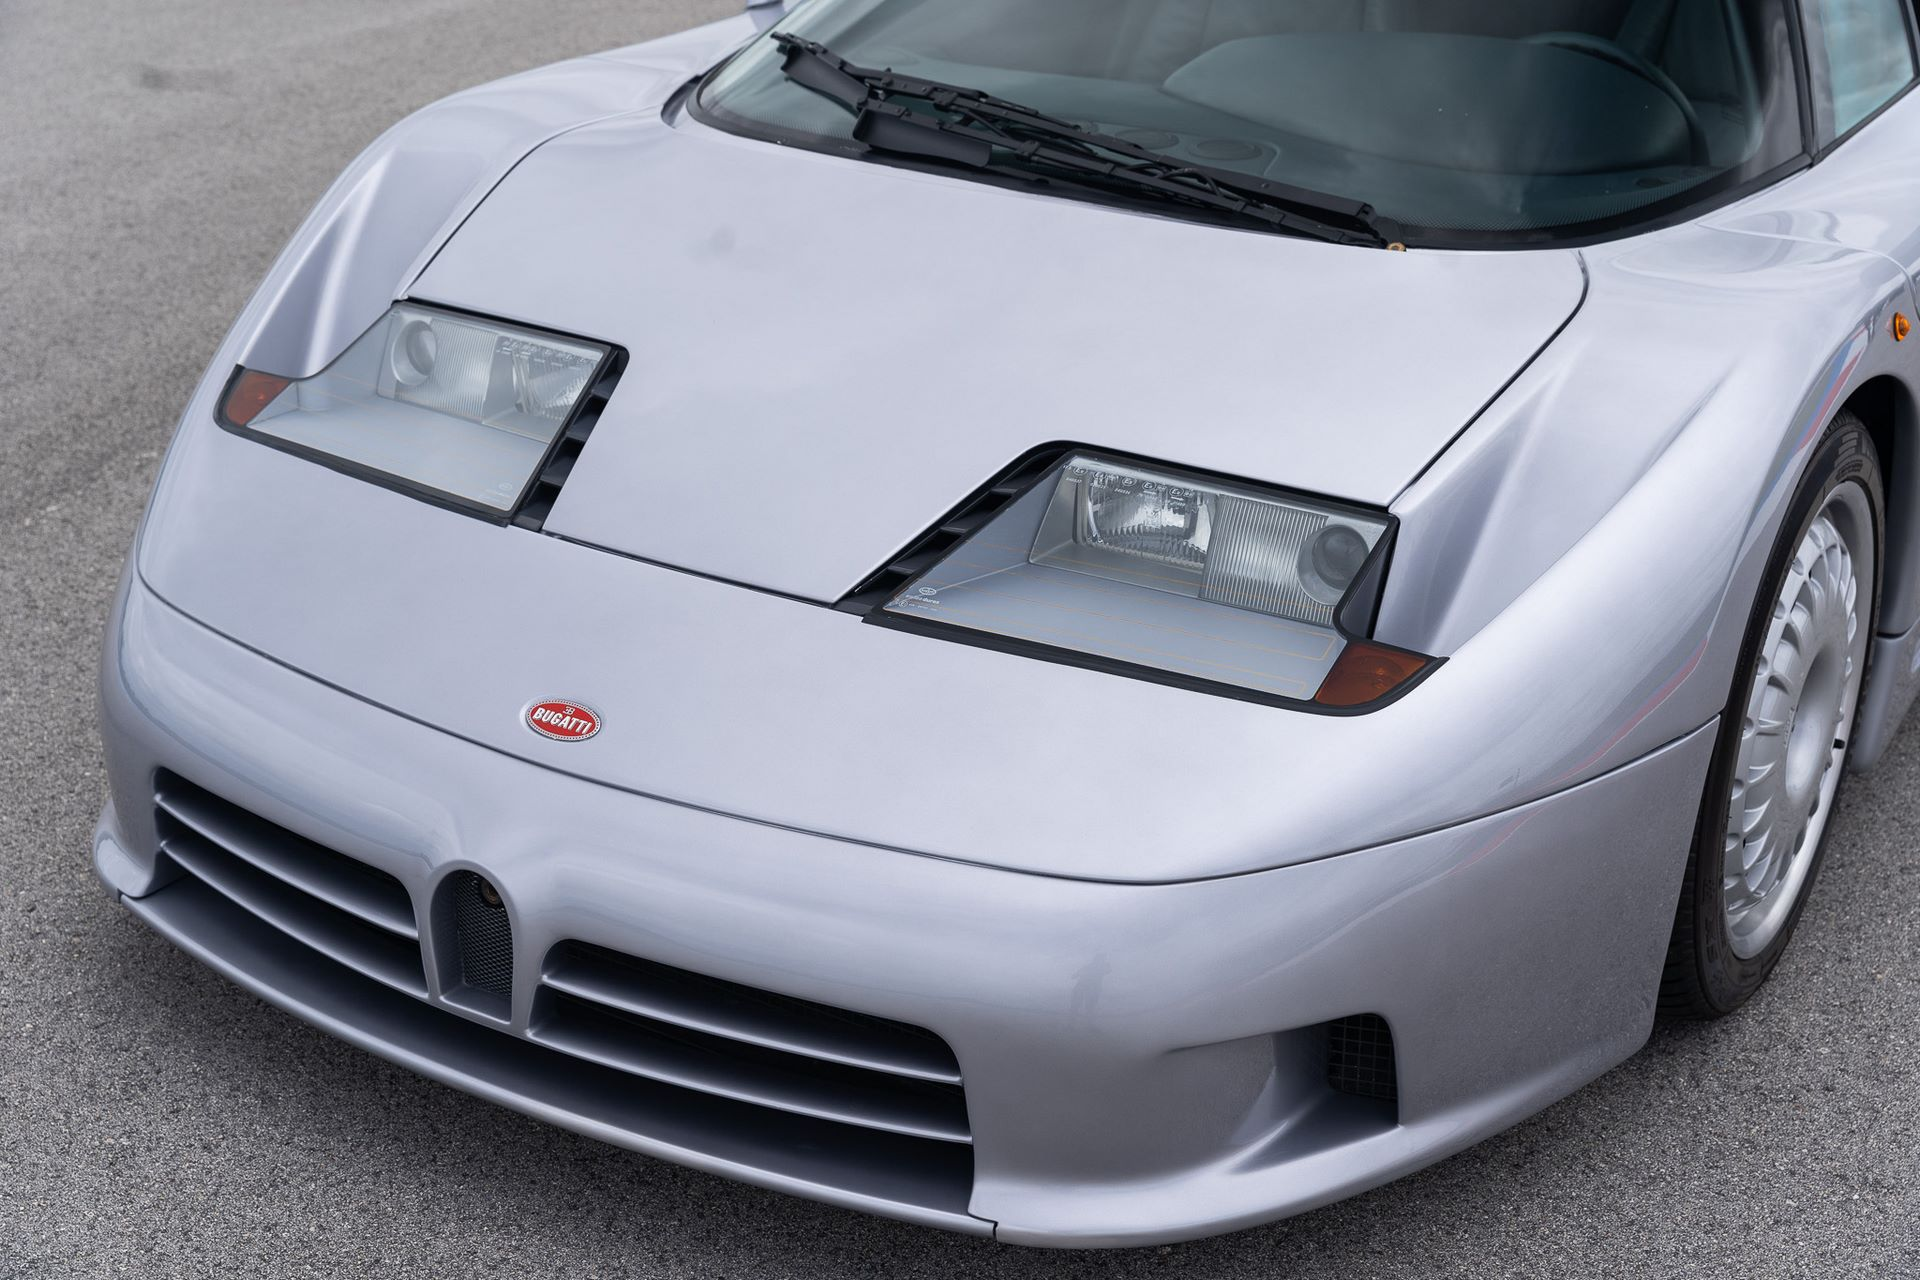 Bugatti-EB110-GT-demo-car-for-sale-6